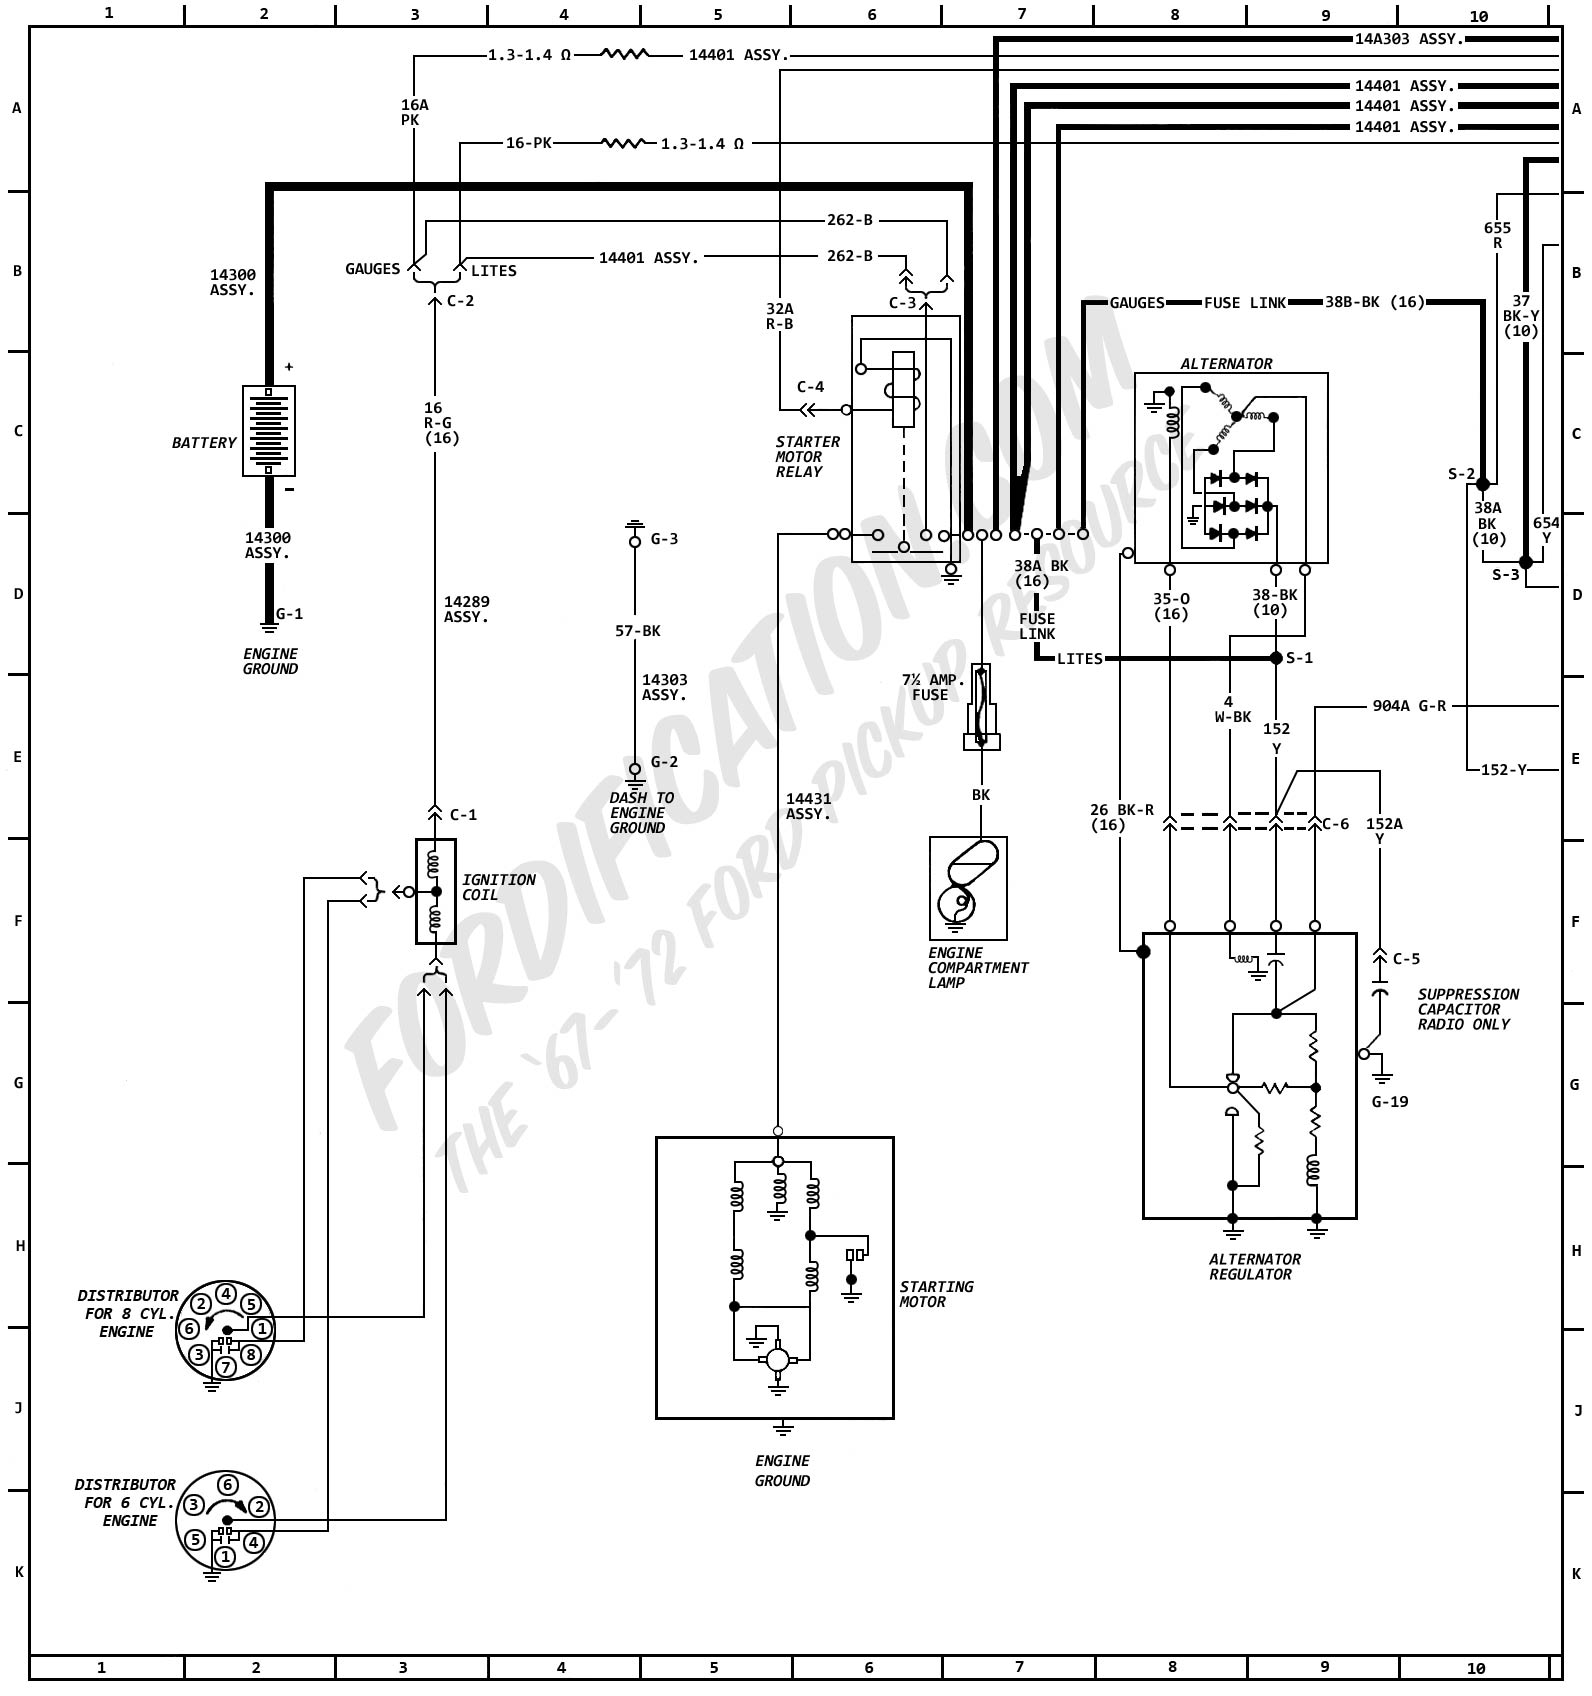 1972MasterWiring_01 1972 ford truck wiring diagrams fordification com 96 f150 turn signal switch wiring diagram at alyssarenee.co